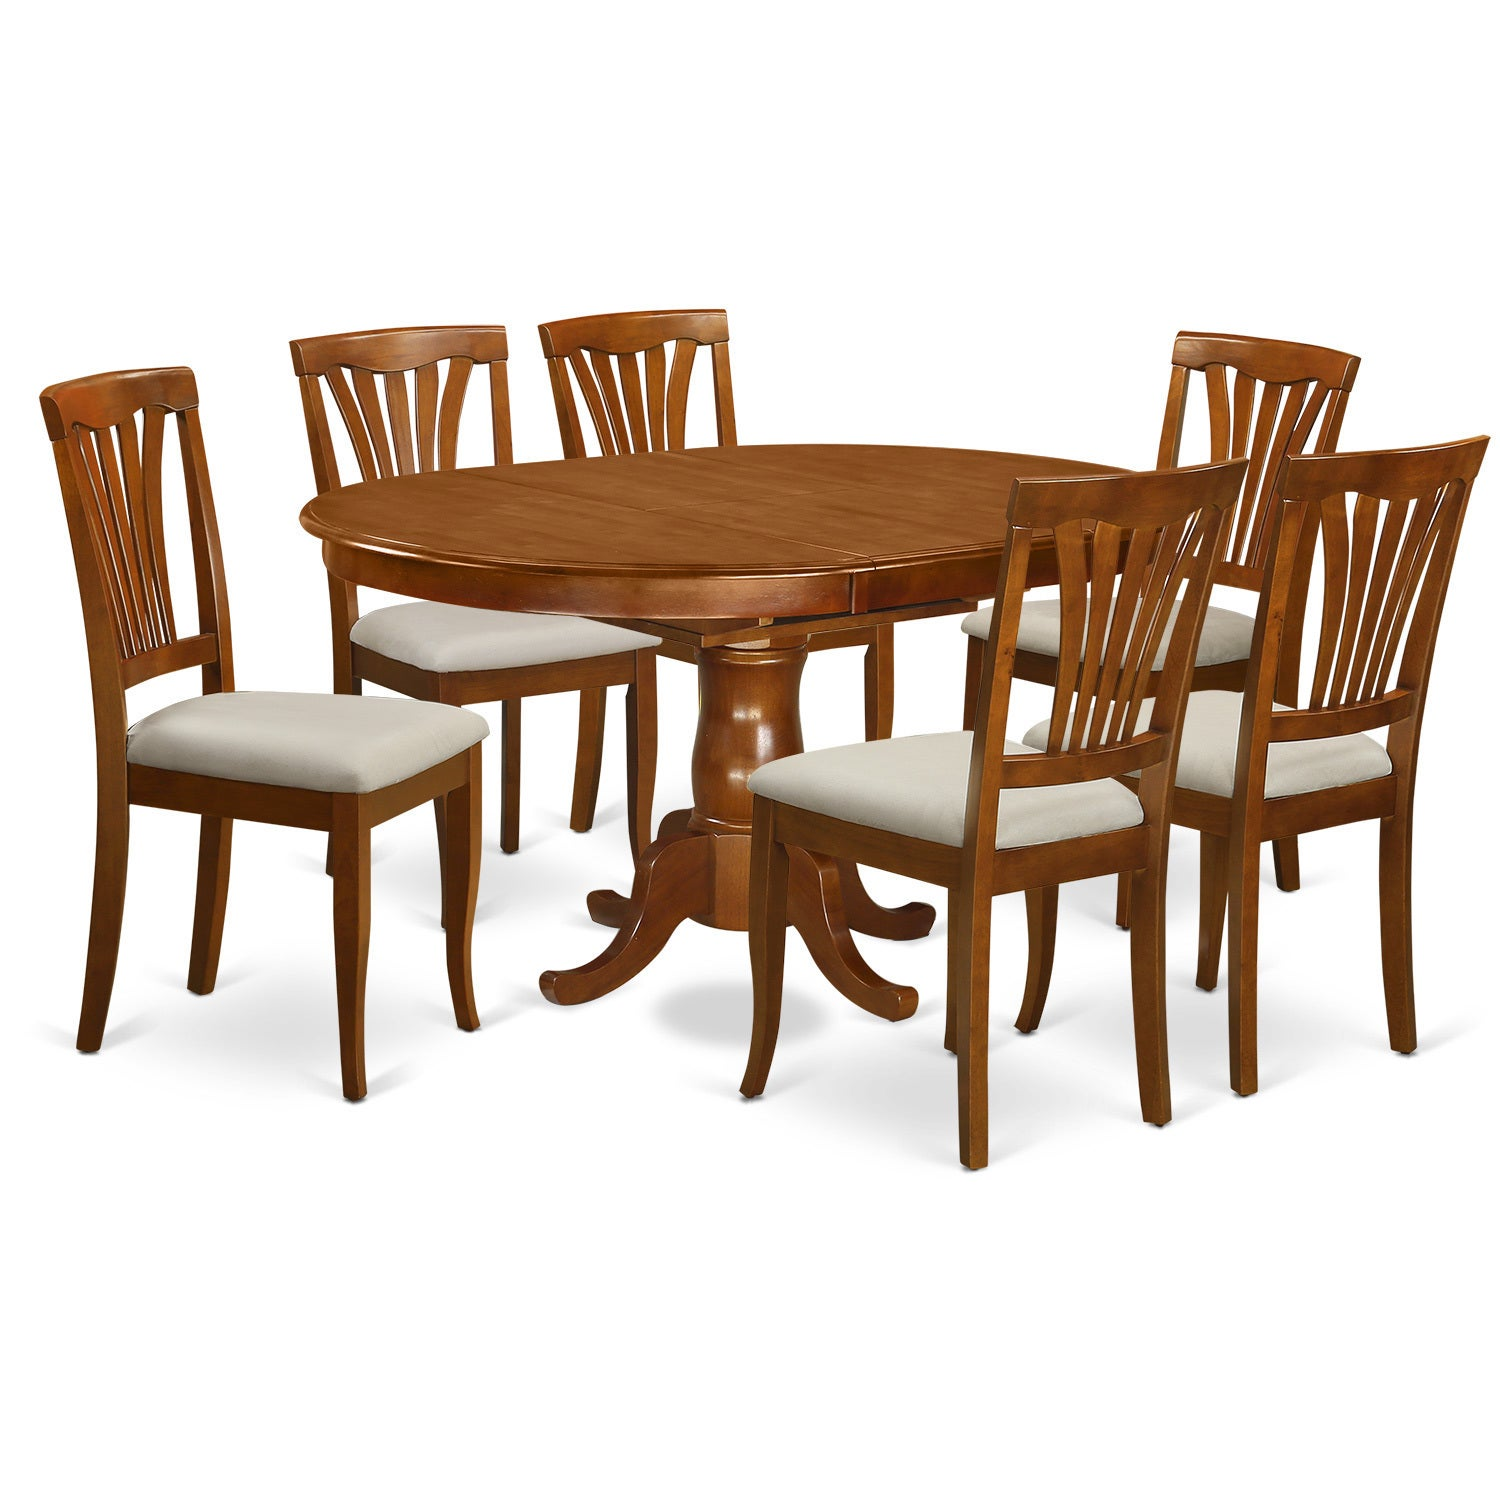 POAV7-SBR Chestnut Rubberwood 7-Piece Dining Room Set Including Kitchen  Dinette Table and 6-dining Chairs